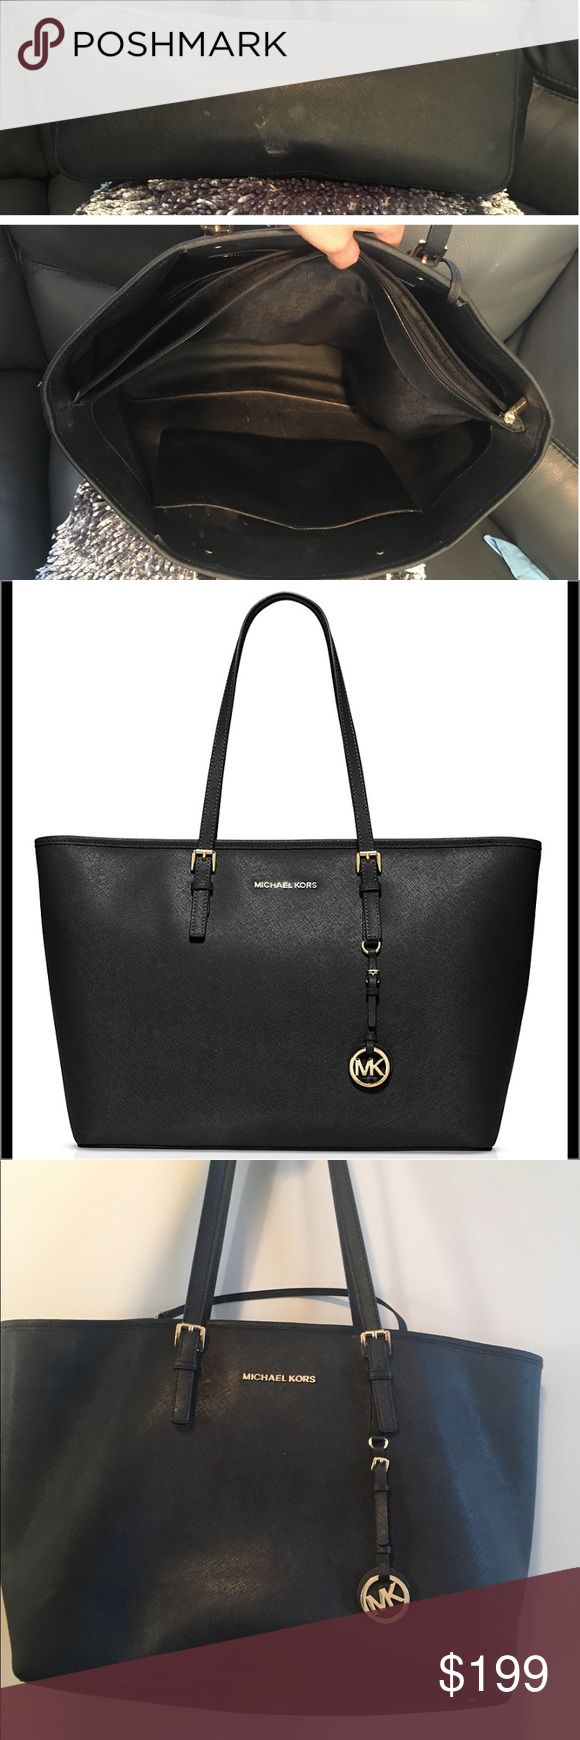 """Michael Kors Large Apple Jet Set Tote Black Join the jet set with this leather tote from MICHAEL Michael Kors. Its roomy silhouette and utilitarian zip compartment hold all your travel essentials.  Purchased from the Apple store it has the padded compartment in the middle to fit any device up to 17 inches  Can be professionally cleaned to look new  Large size Tote  •Interior zip pocket, five interior slip pockets, interior zip compartment •Logo on front, logo hang tag •17""""L x 11.5""""H x 5""""W…"""